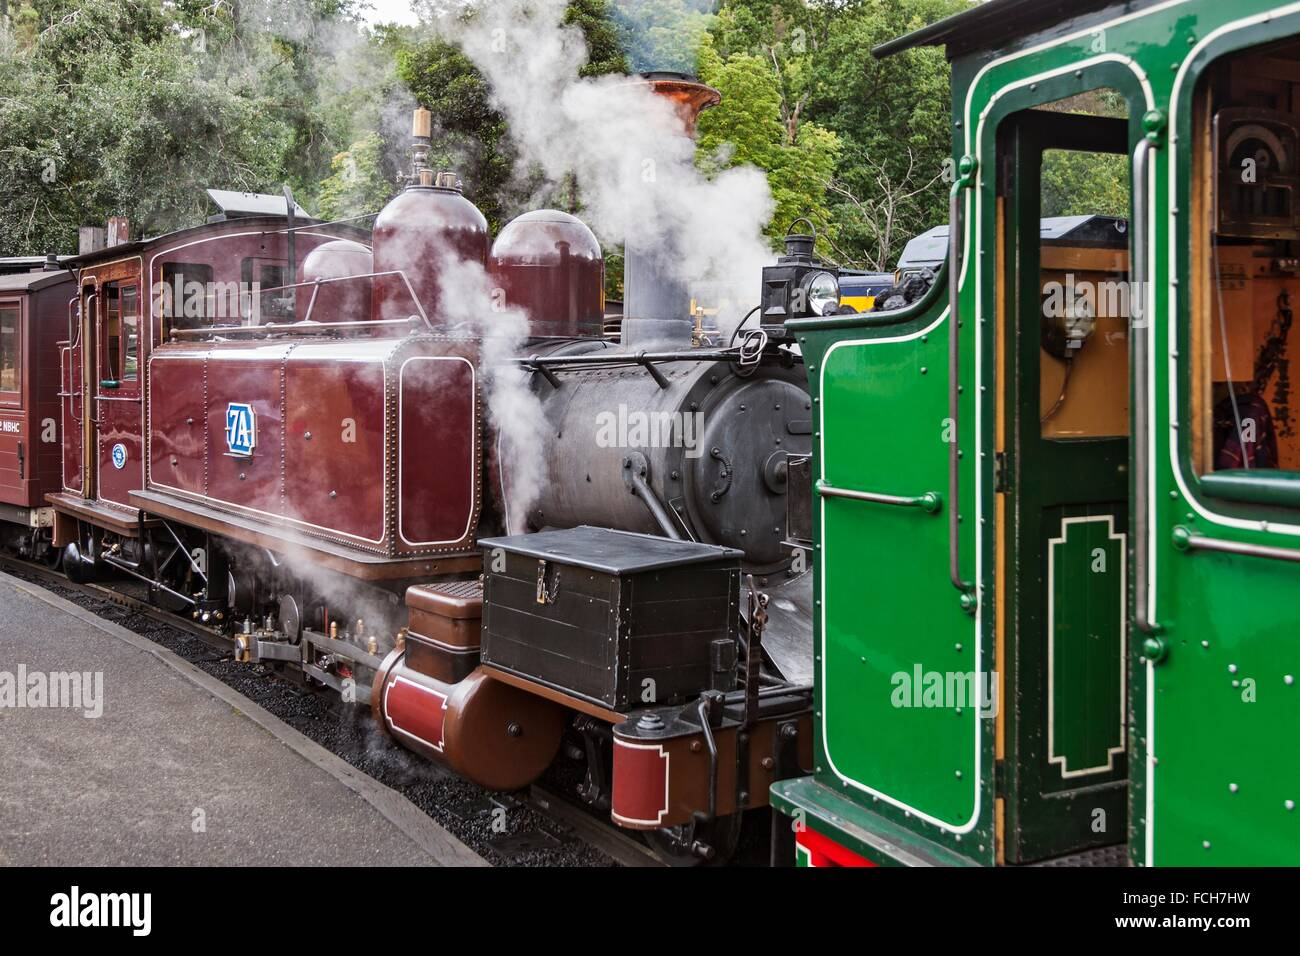 Type NA class 2-6-2T Steam Locomotive of the Puffing Billy Railway narrow gauge heritage railway in the Dandenong - Stock Image